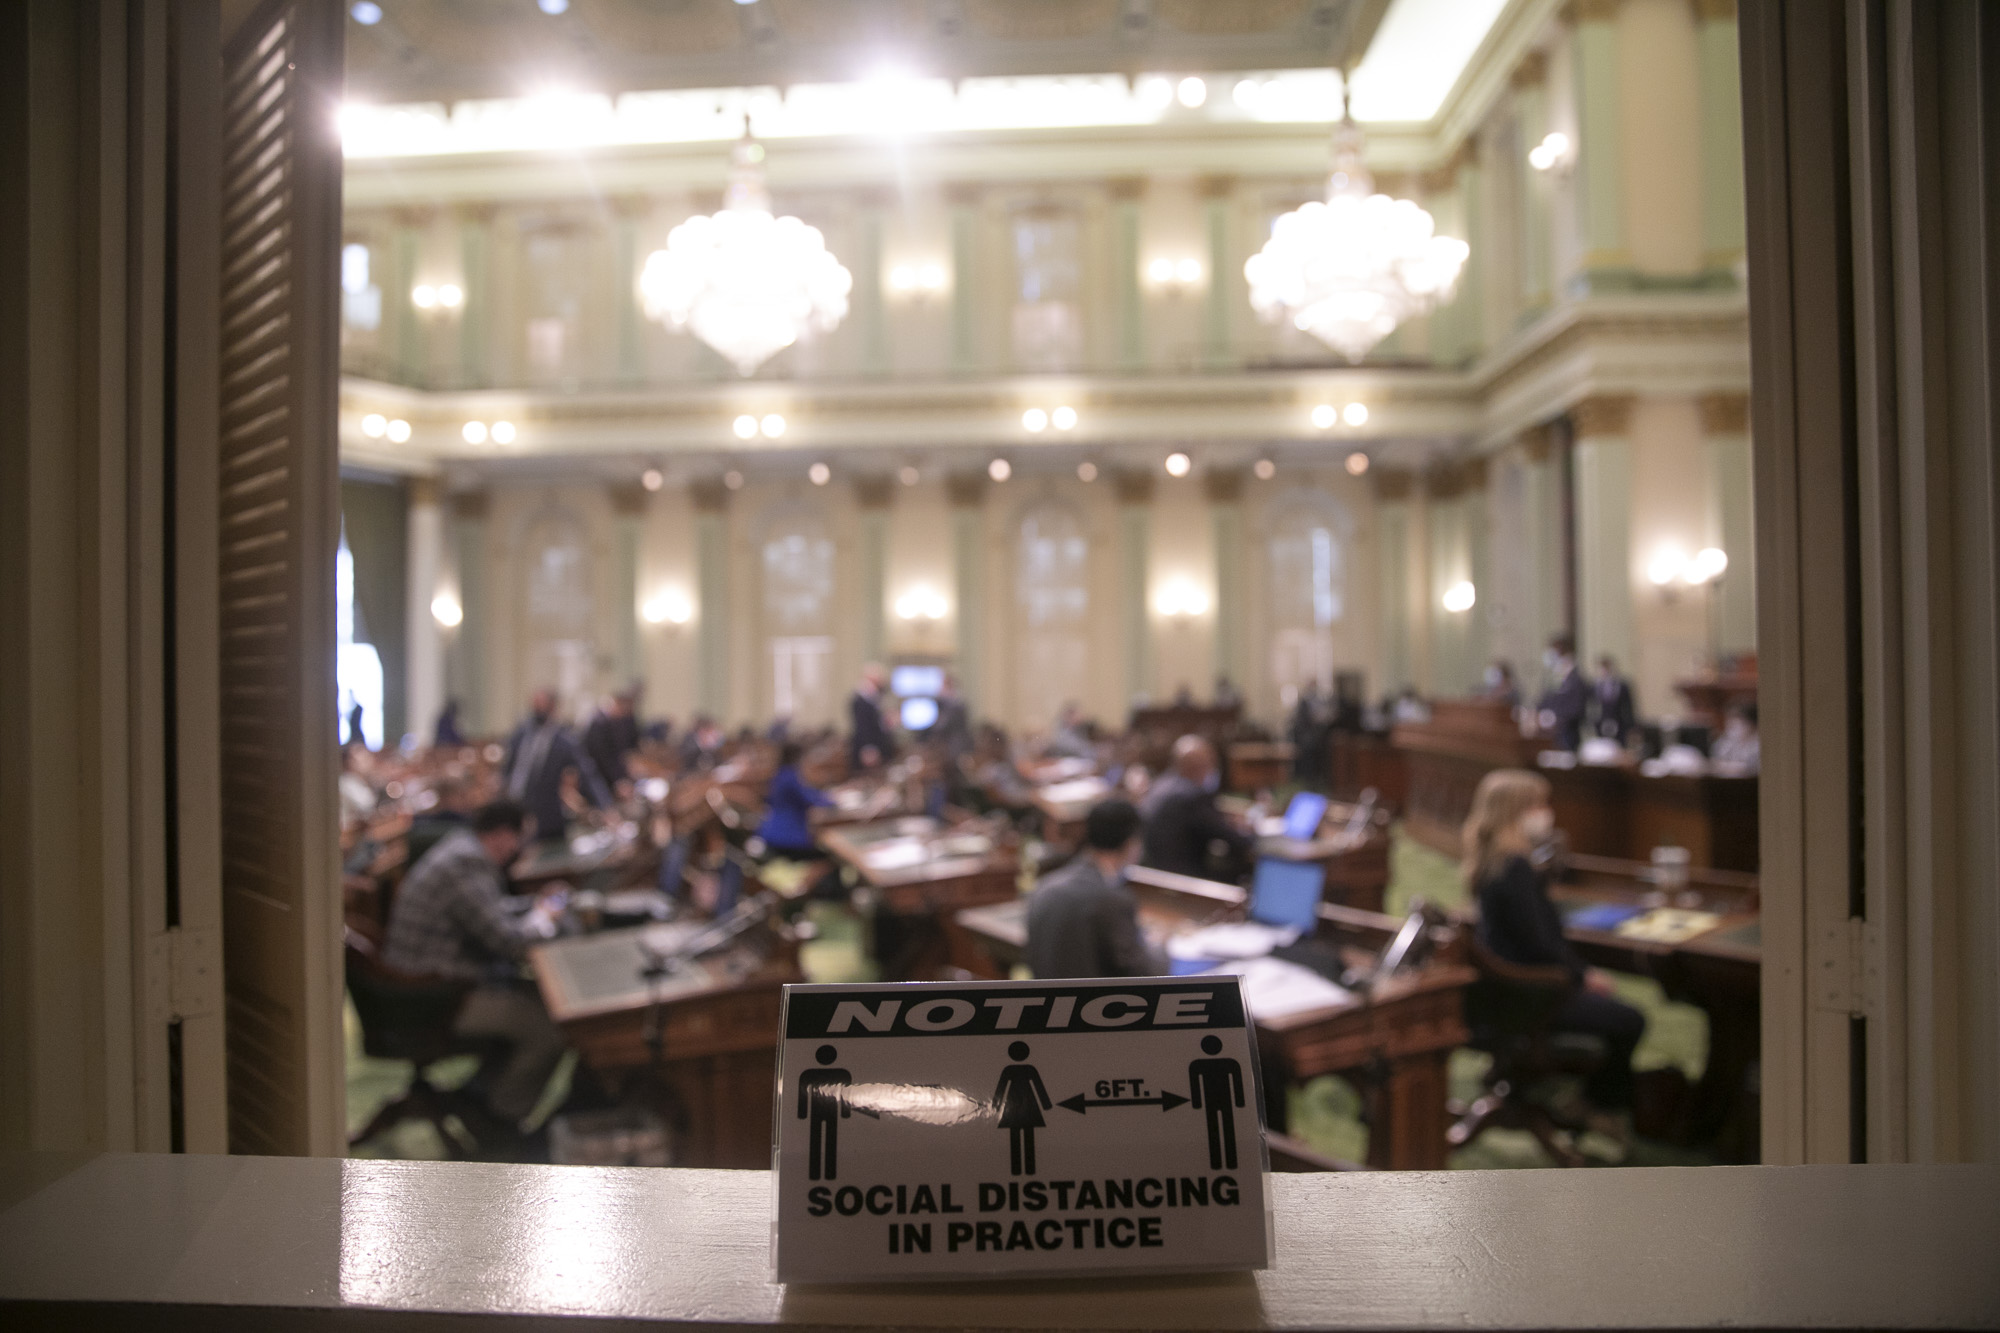 A reminder to maintain social distance is placed on the window of the press bay looking into the assembly floor on Aug. 31, 2020. Photo by Anne Wernikoff for CalMatters